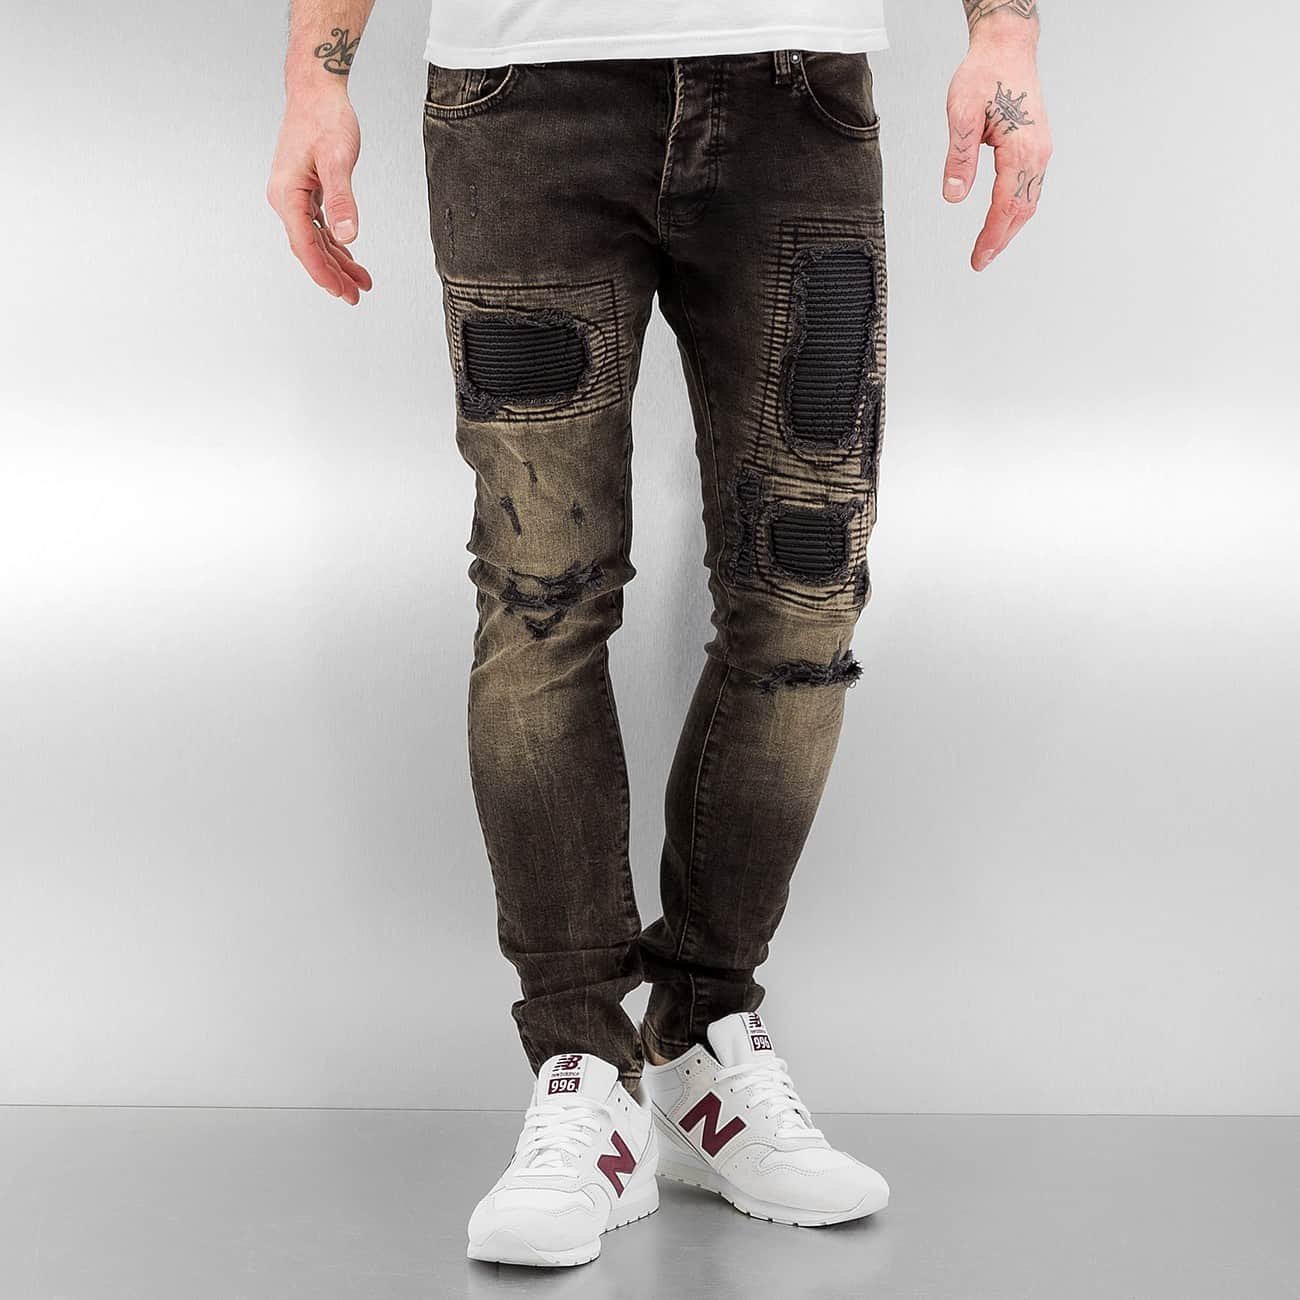 2Y / Skinny Jeans Norwich in black - Streetscenter